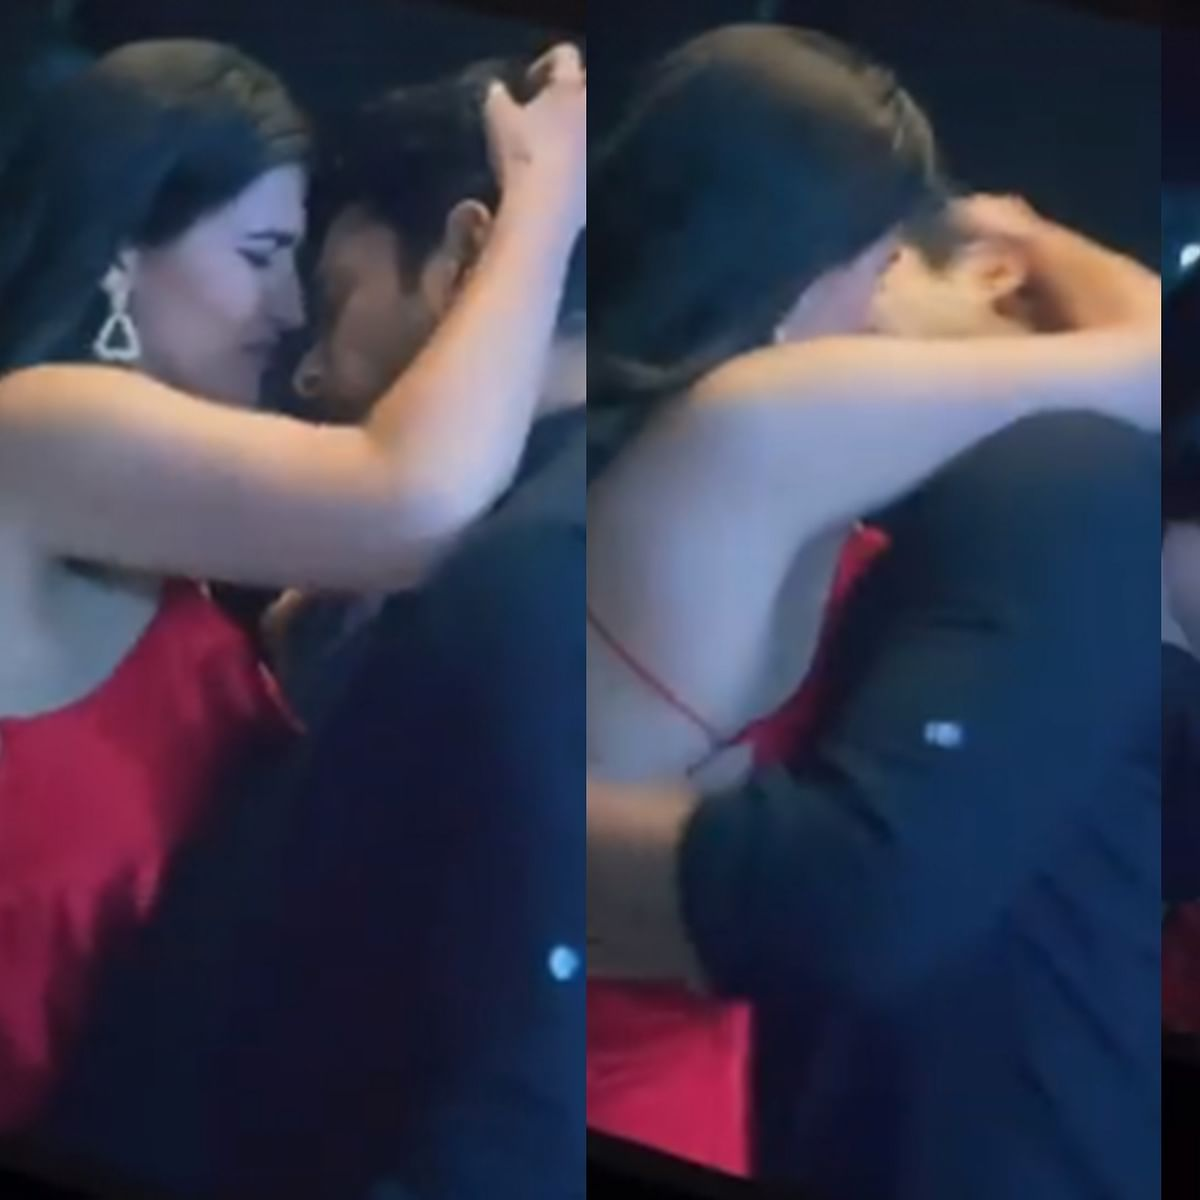 Watch: Sidharth Shukla's steamy smooch with Sonia Rathee from 'Broken But Beautiful 3' goes viral